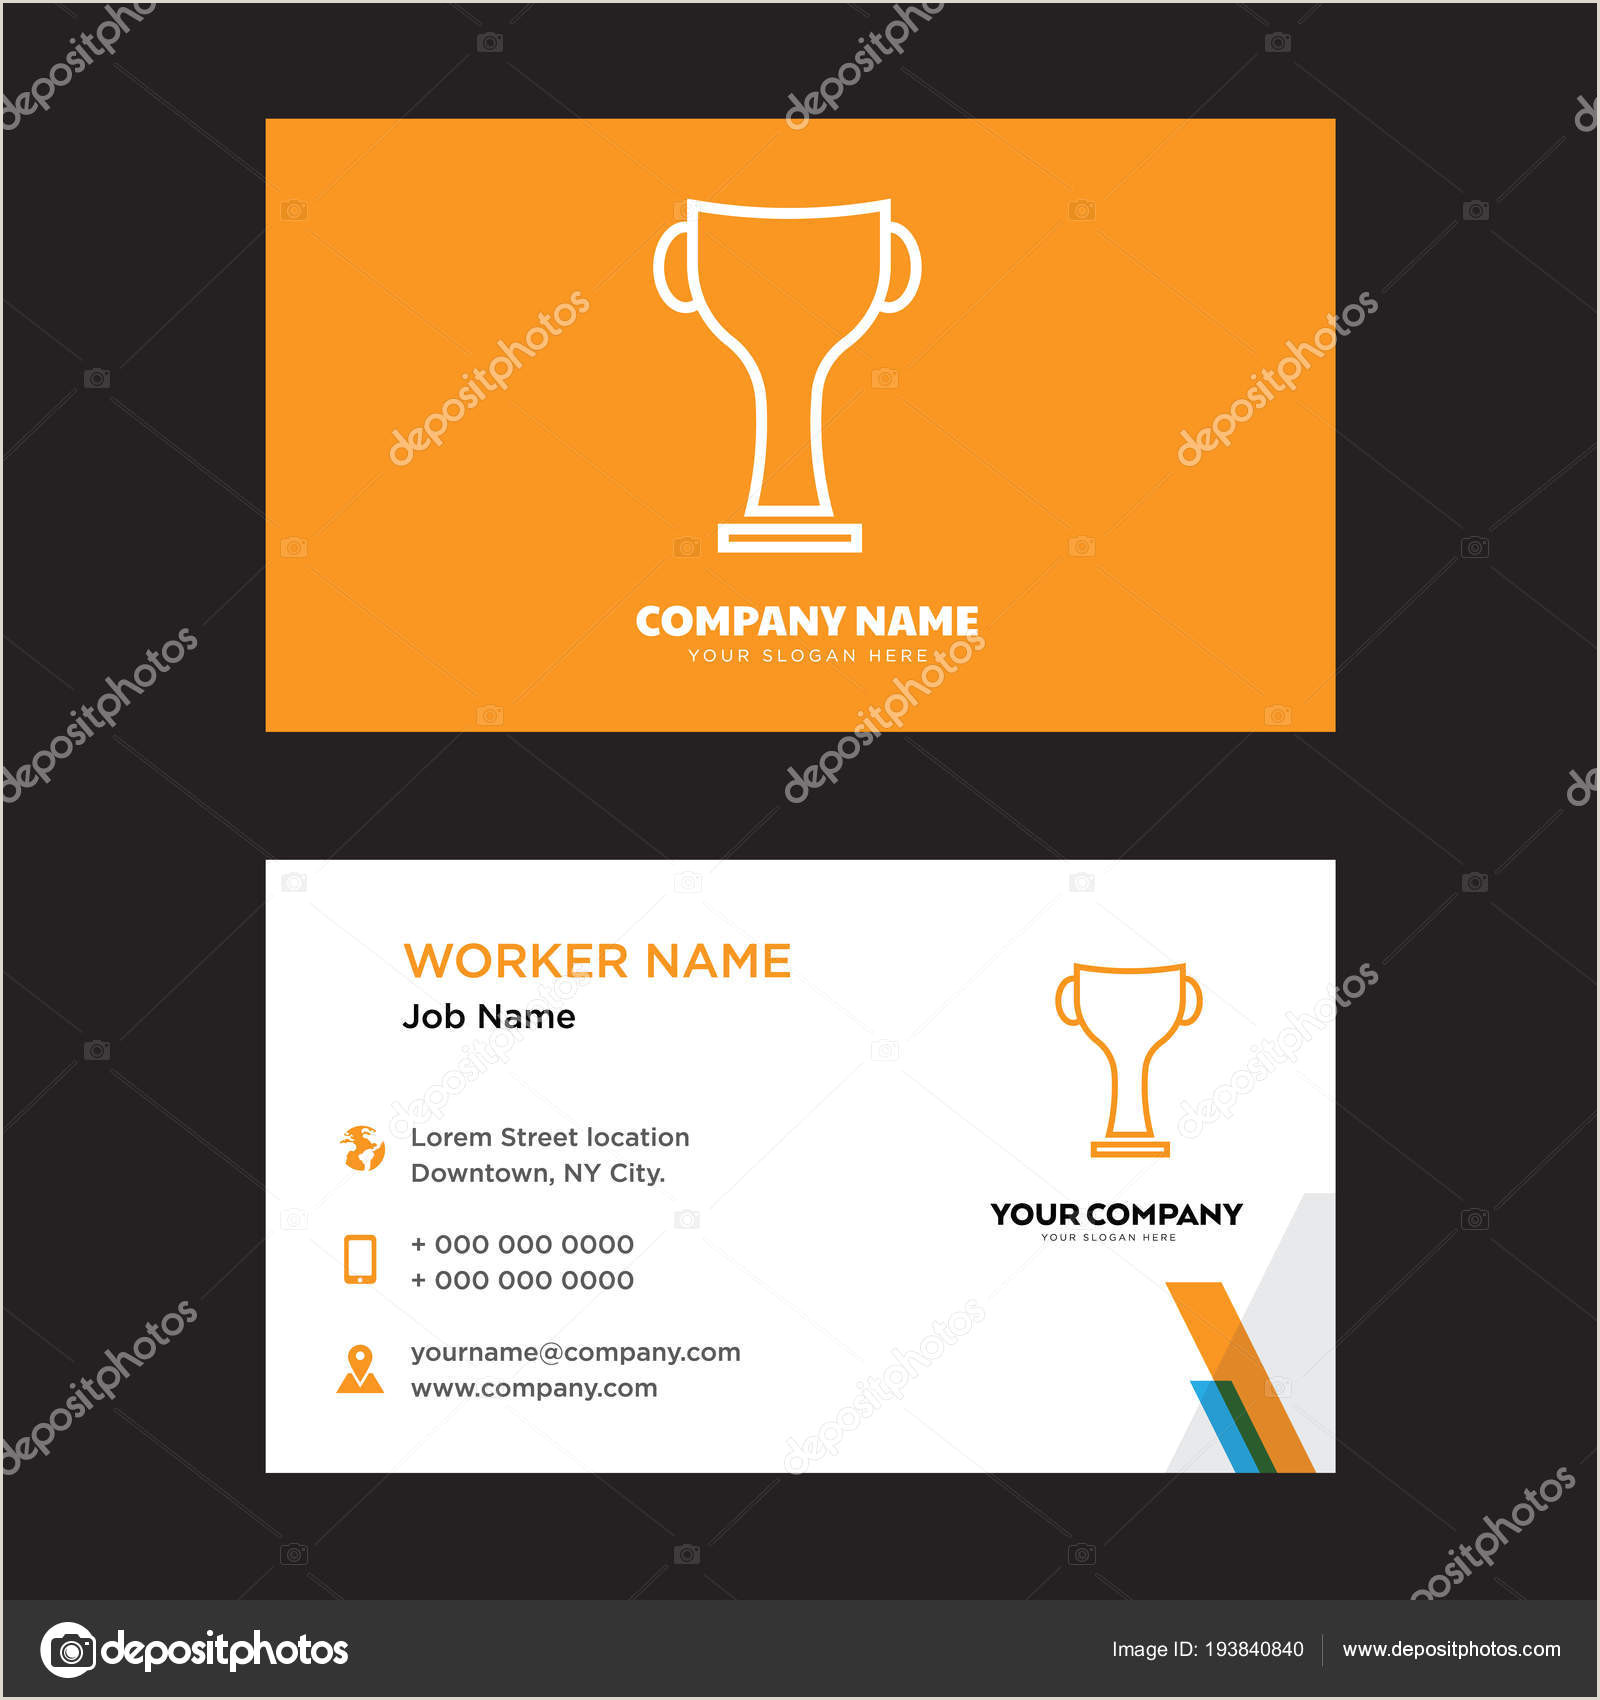 Award Winning Business Cards Winner Award Business Card Design